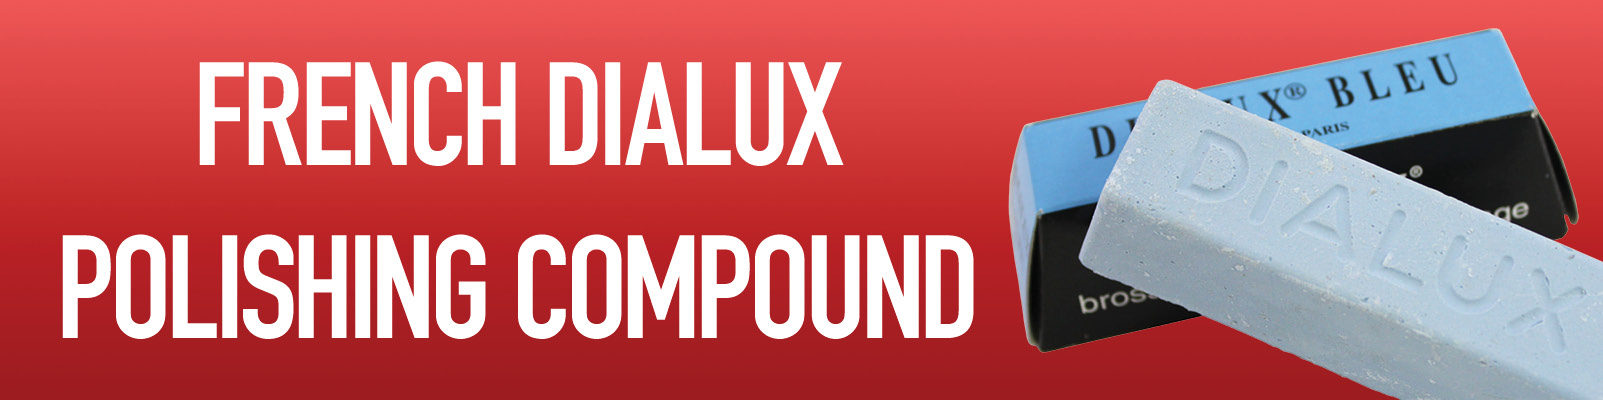 French Dialux Polishing Compounds